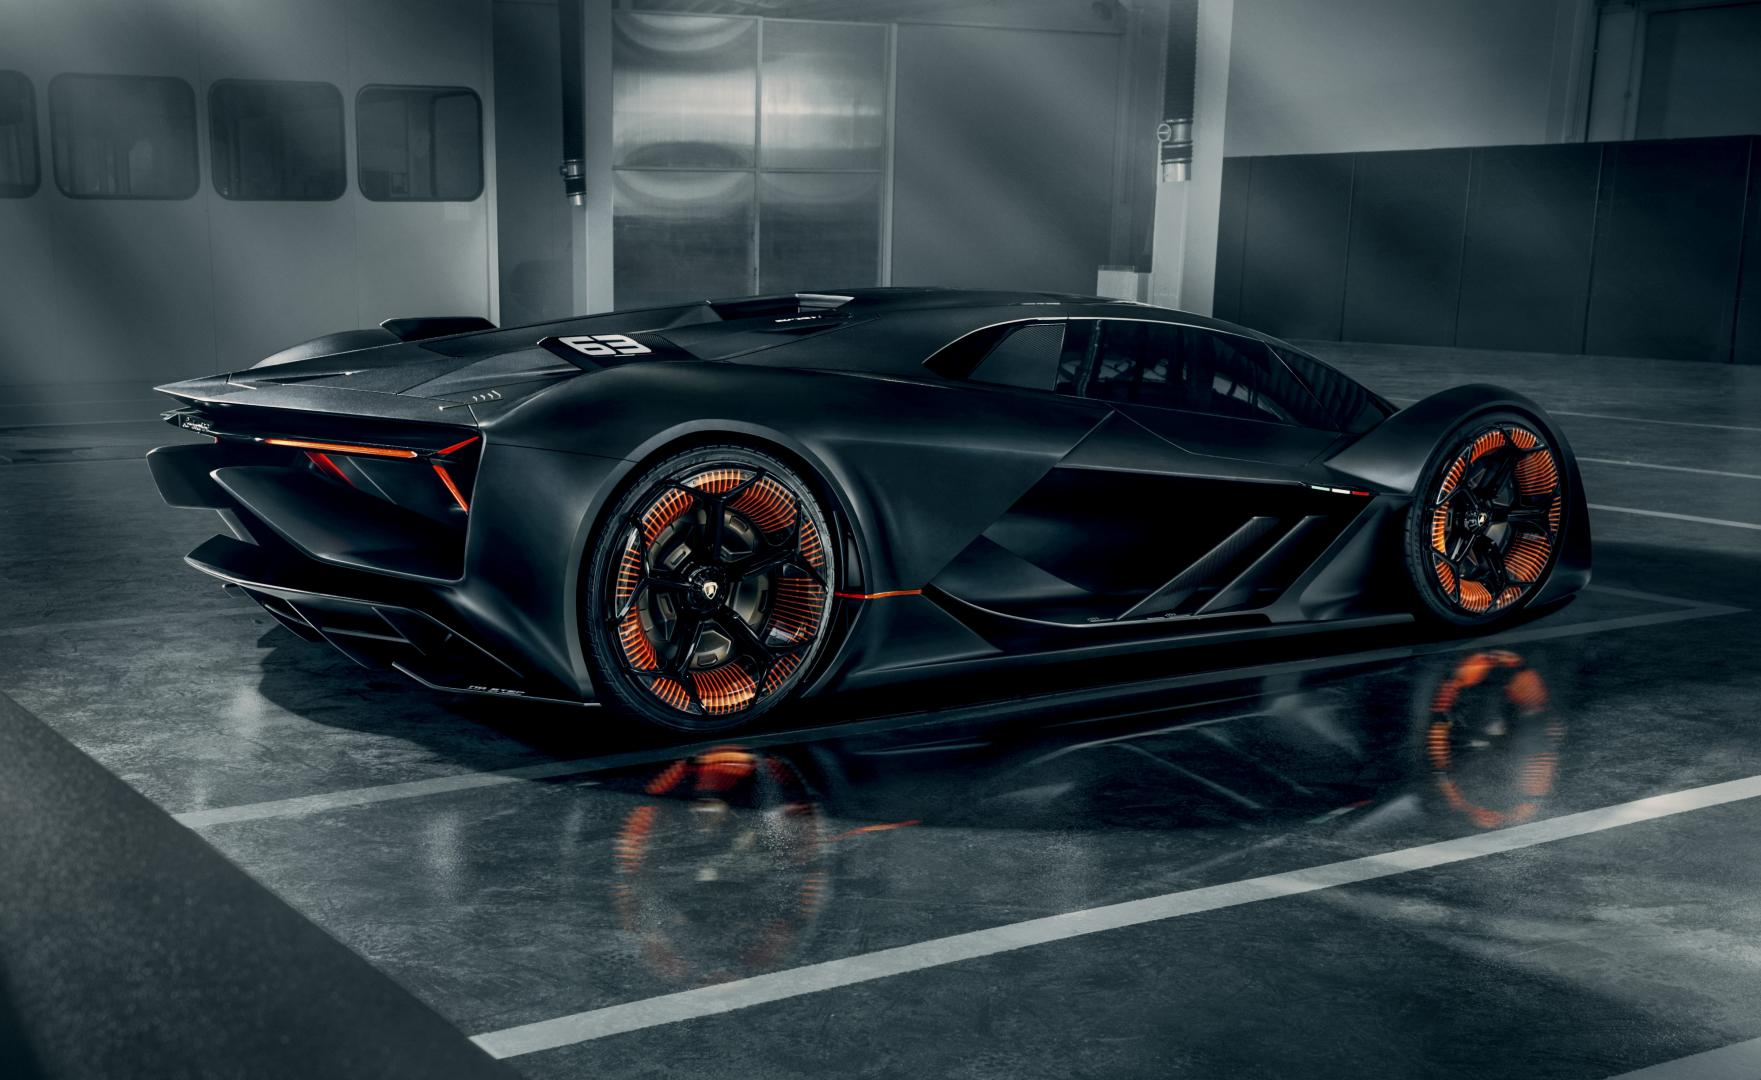 The All New Terzo Millennio Code Named Lb48h 840 Hp Hybrid